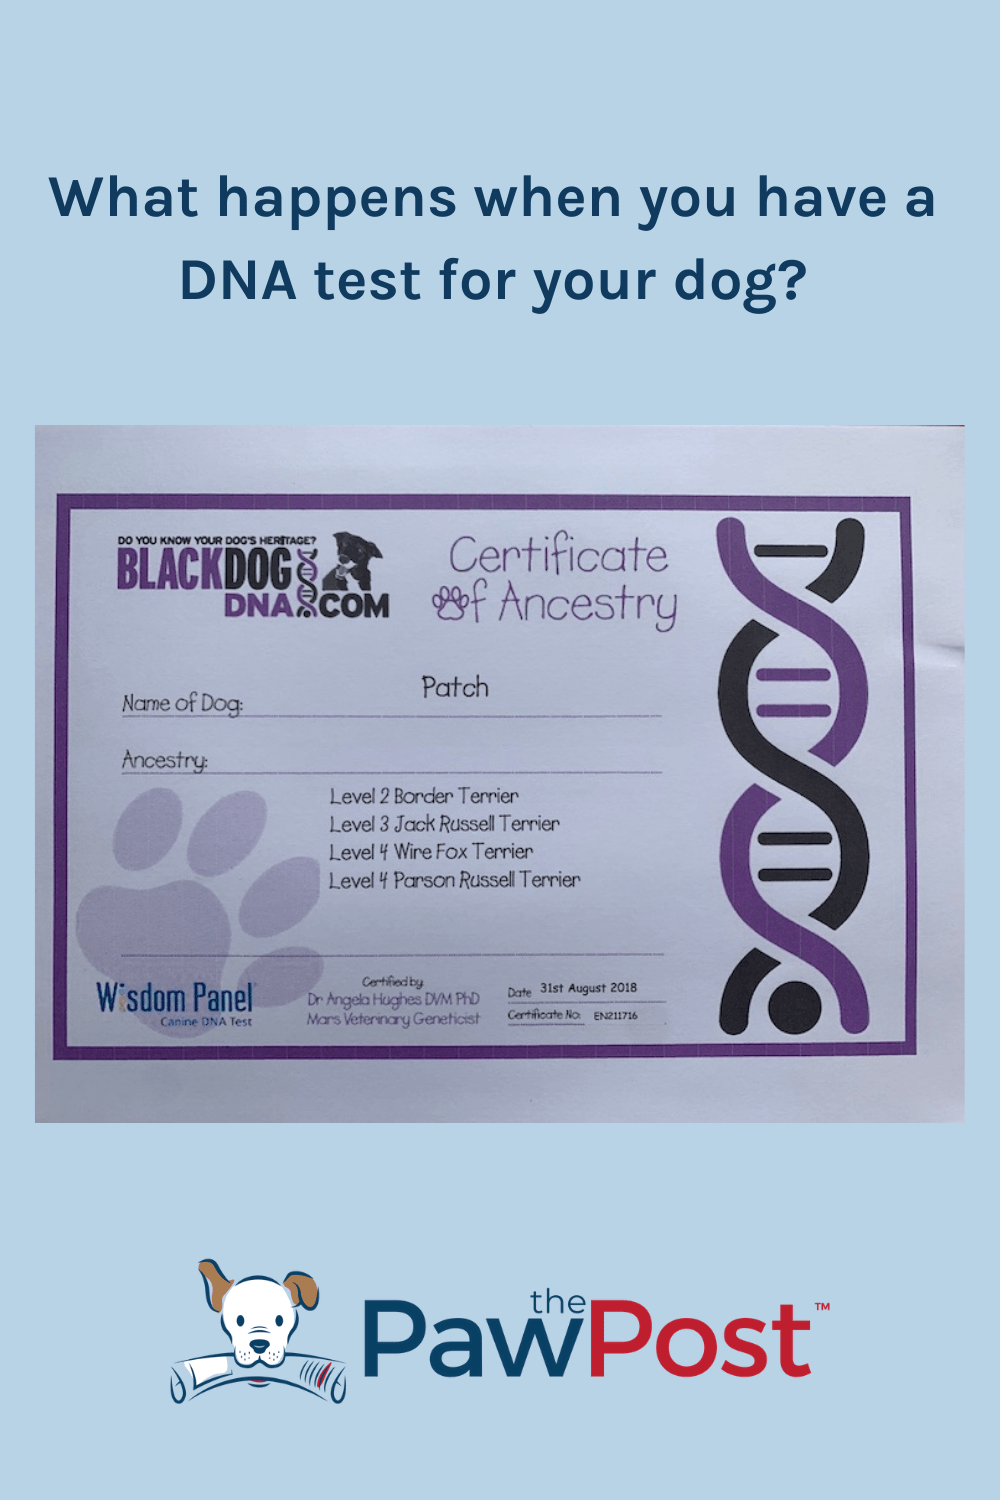 What happens when you have a DNA test for your dog